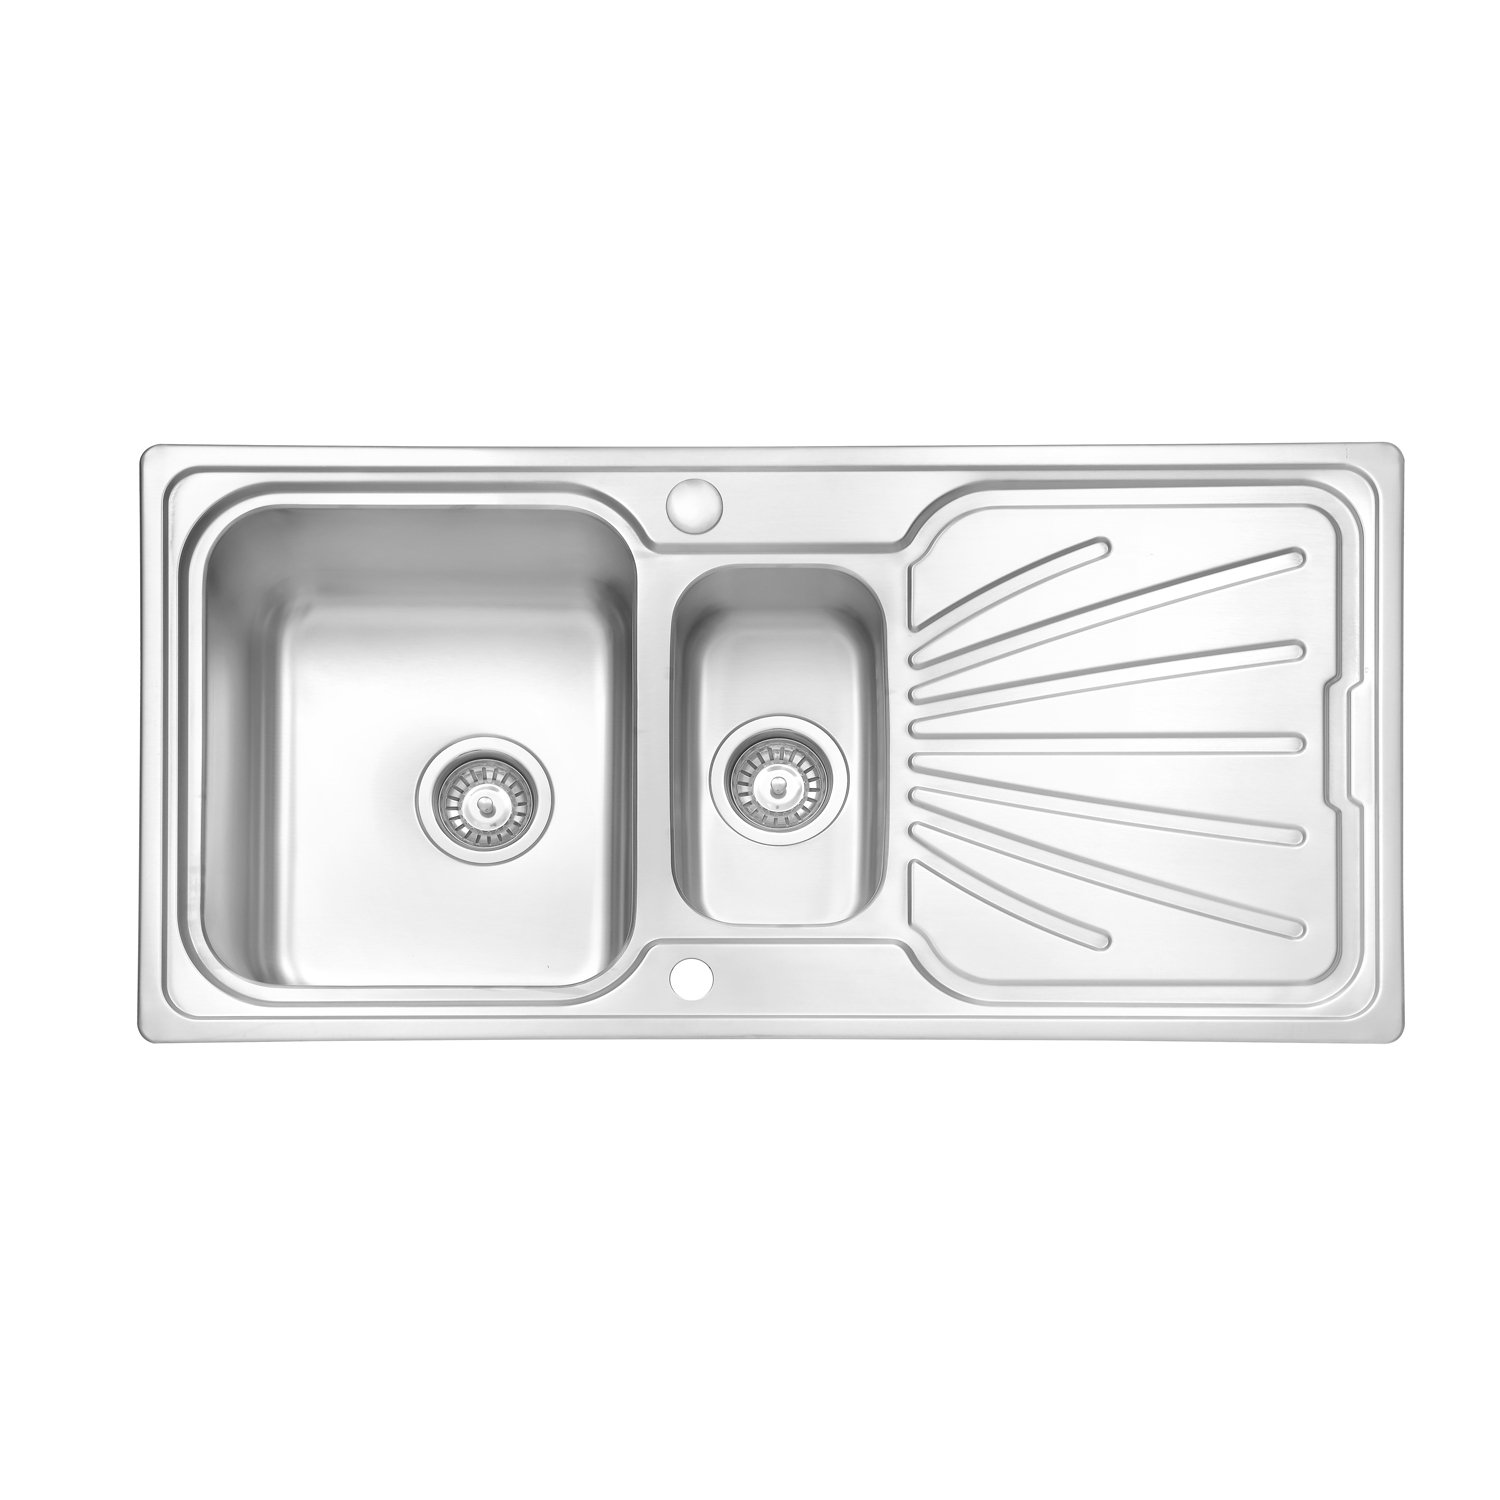 Jass ferry welding style stainless steel kitchen sink 1 5 one half square bowl reversible drainer with strainer waste 1000 x 500 mm 10 years warranty